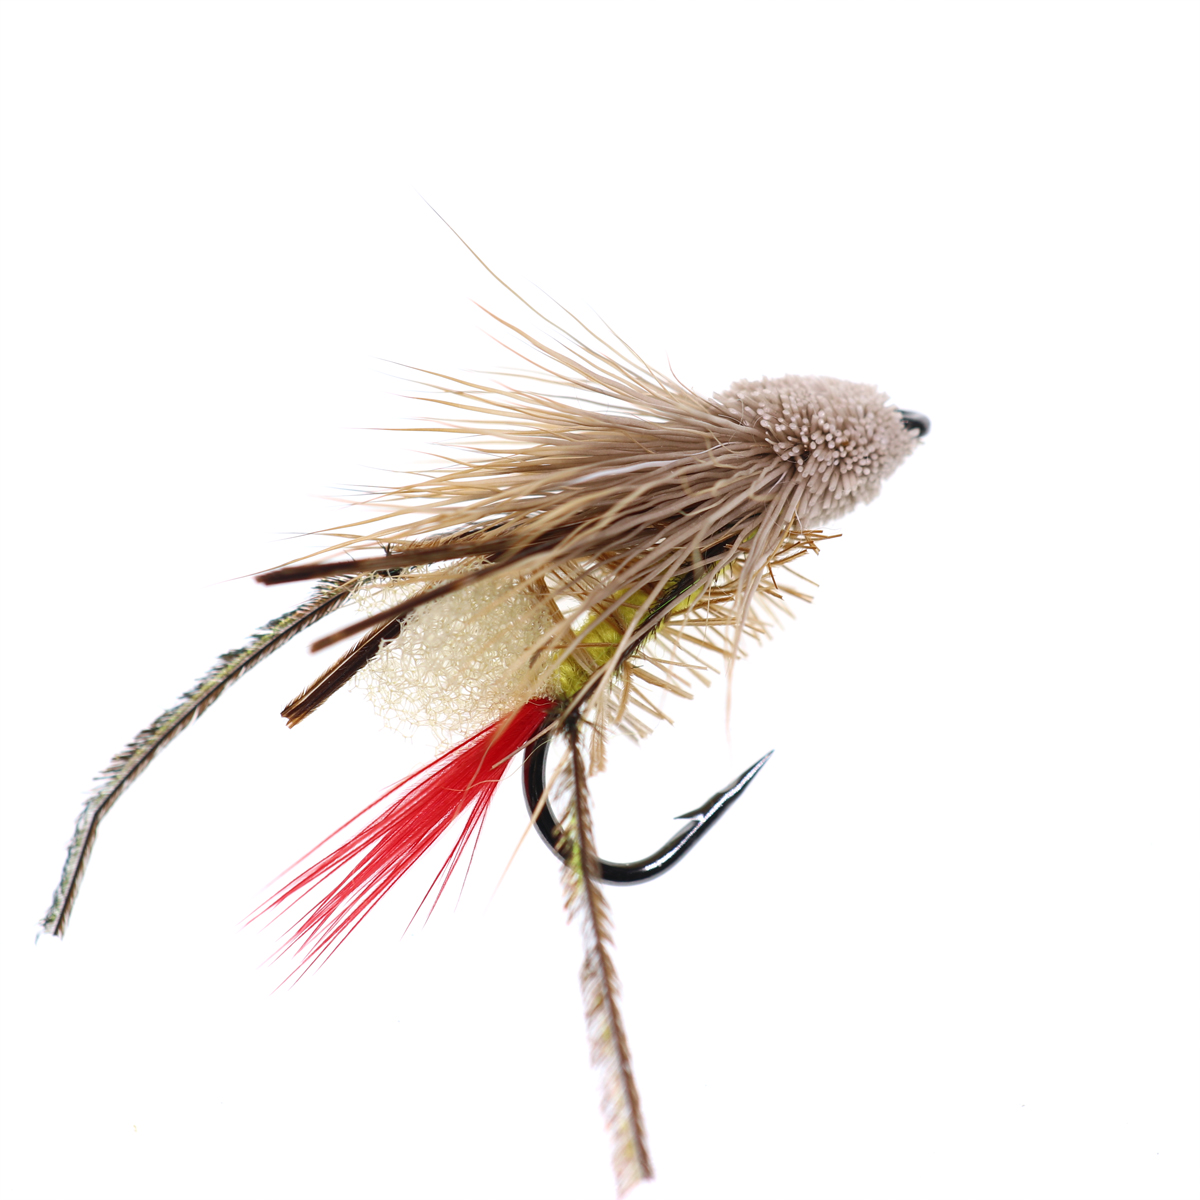 5PCS #10 Trout Fishing Fly Grass Hopper Fly terrestrial Hopper Fly Floating Bass Crappie Bug Bait Artificial Lure 17